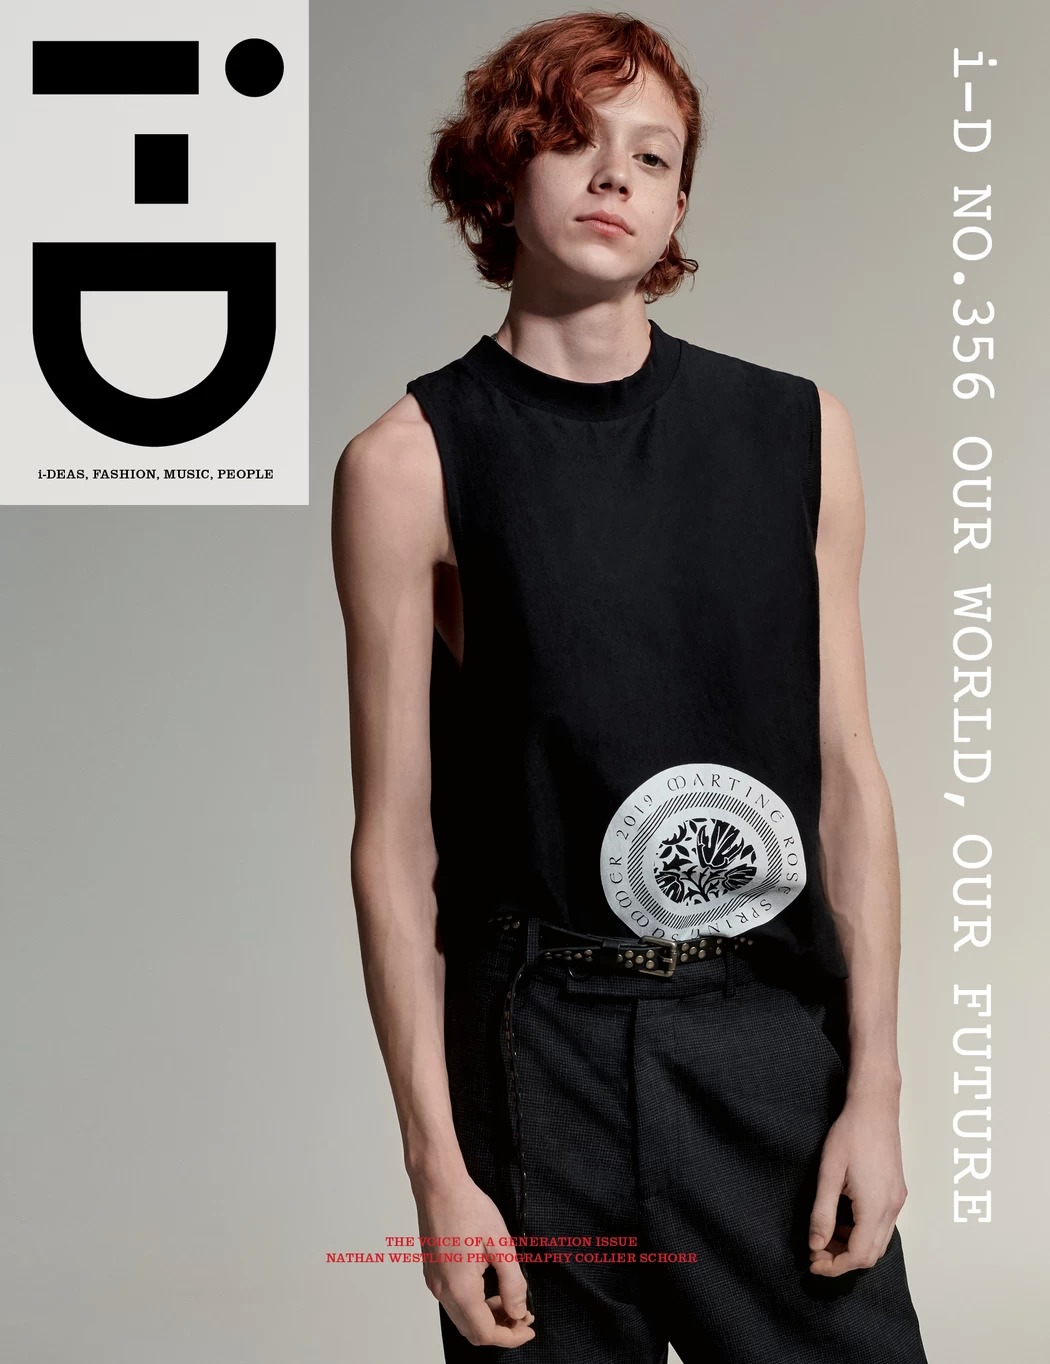 Collier Schorr for i-D cover story with Nathan Westling.